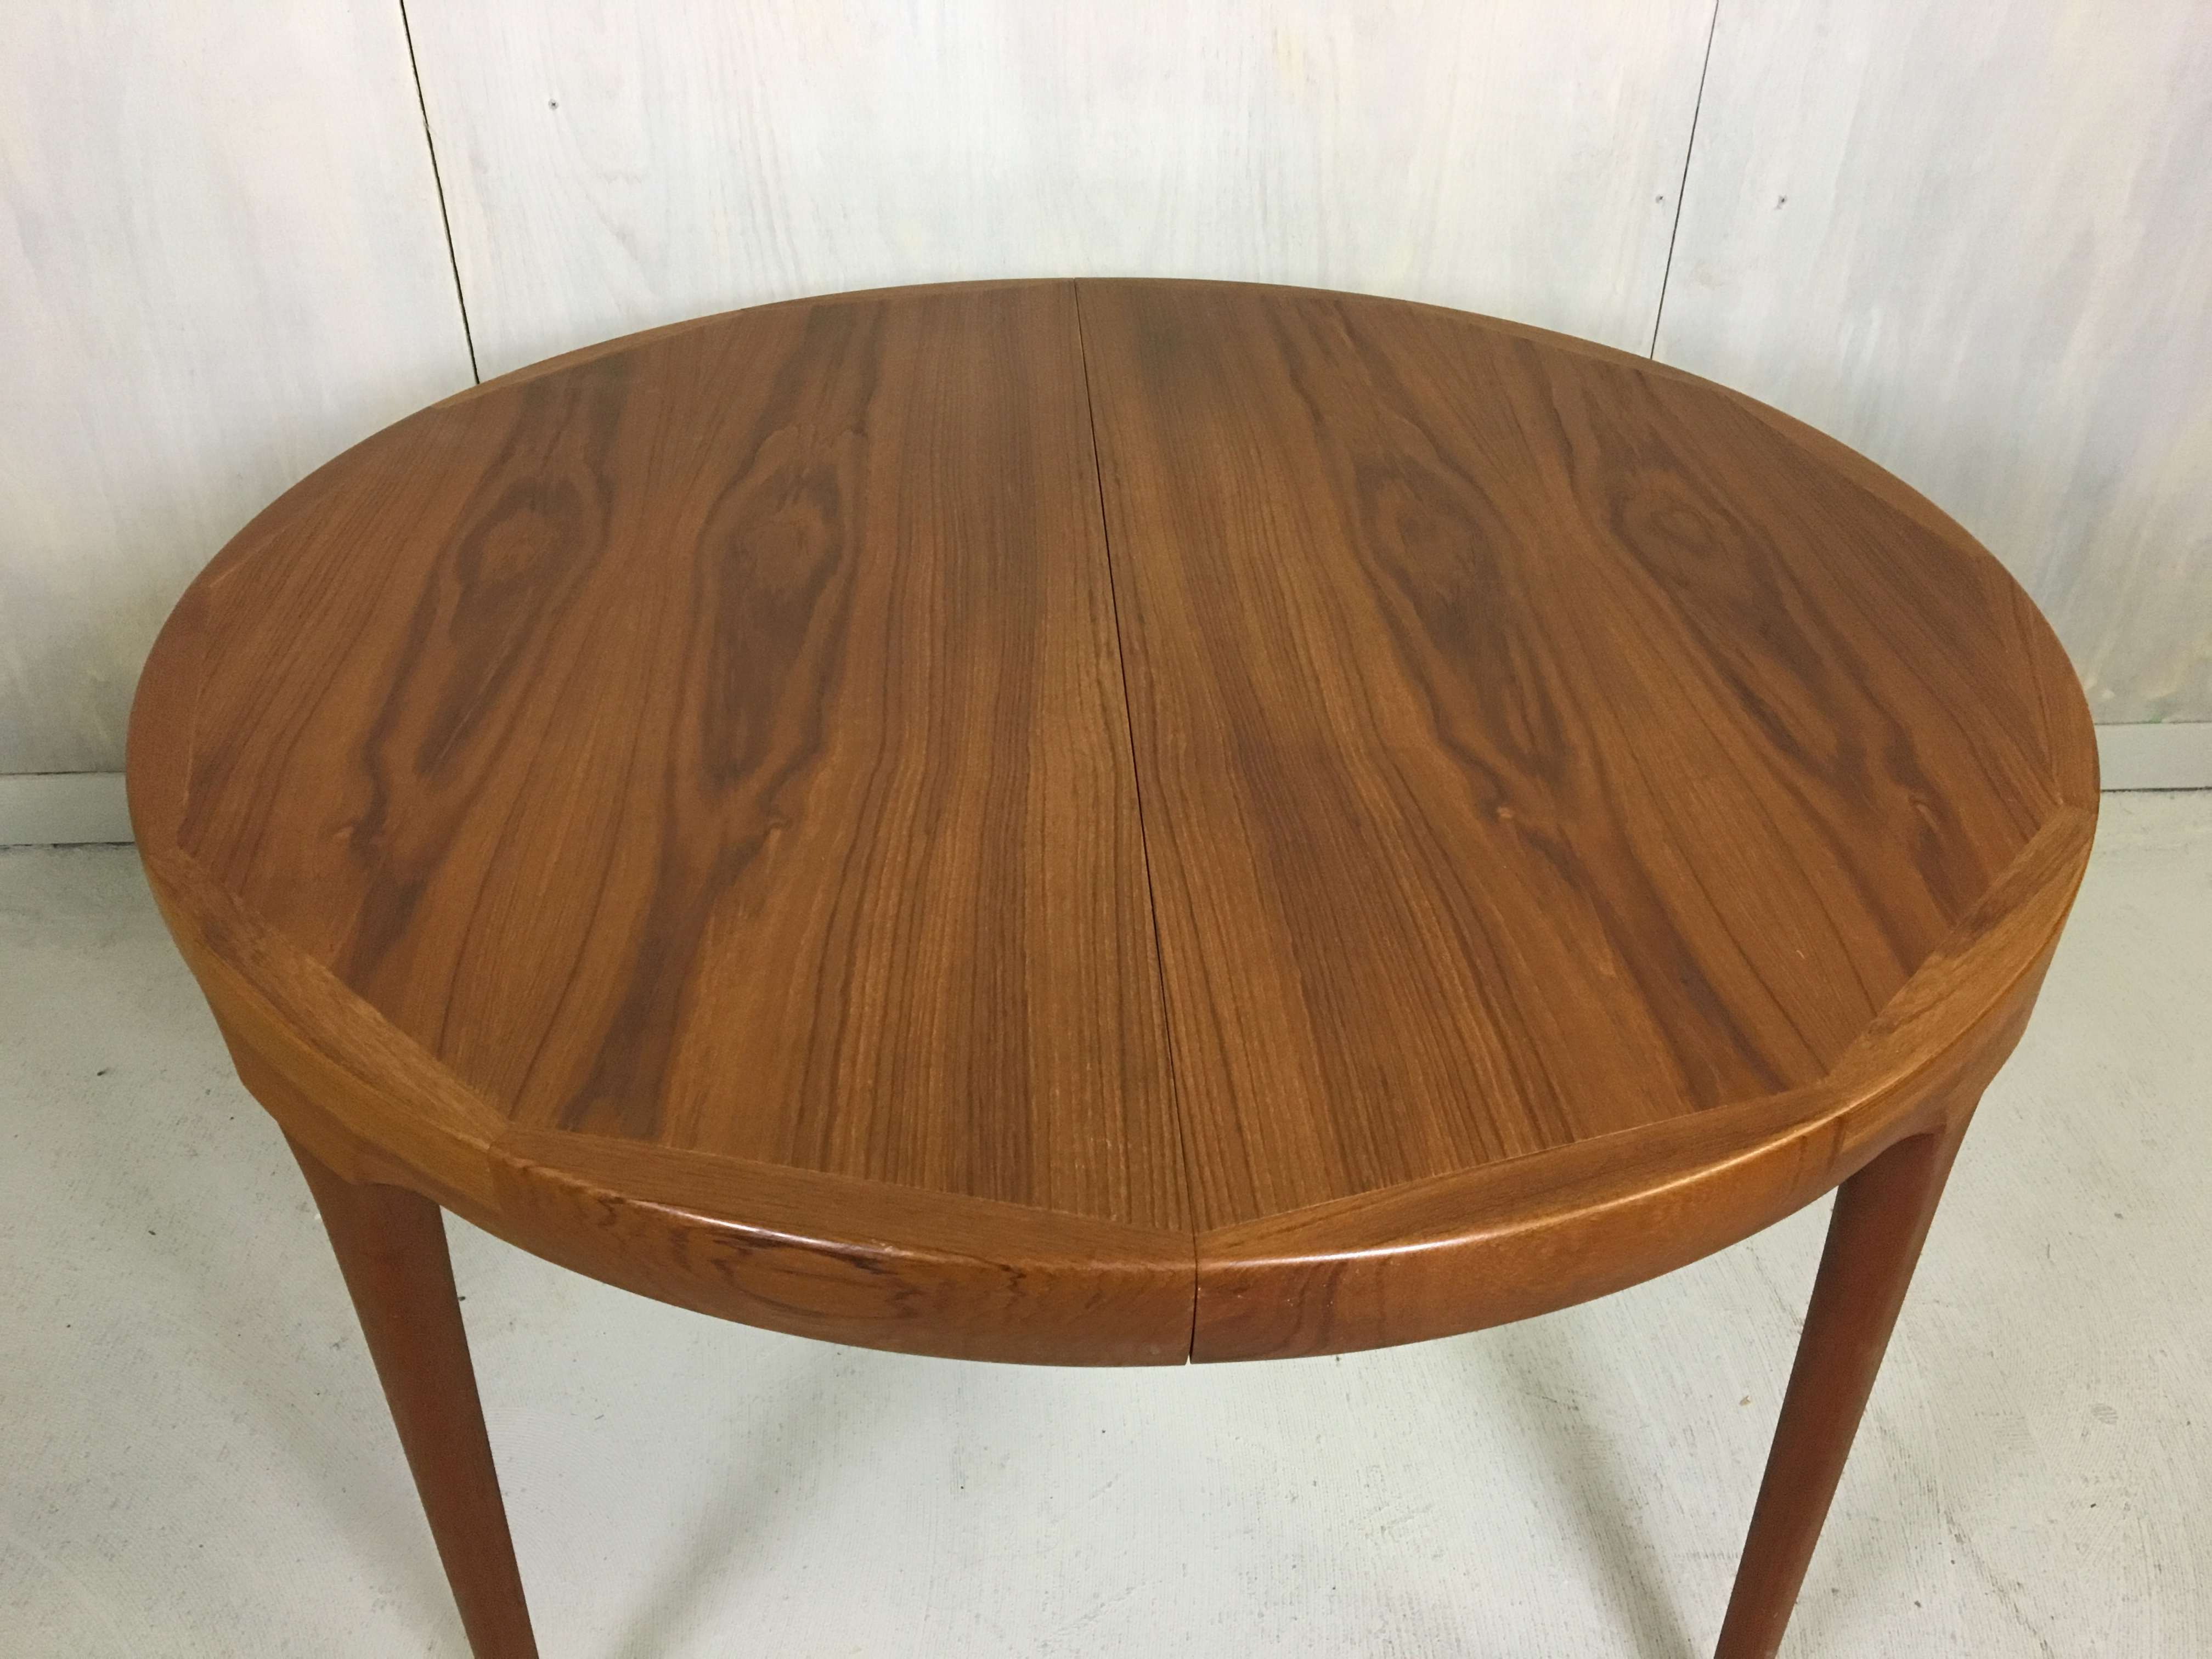 Danish Modern Ib Kofod-Larsen Extending Teak Dining Table